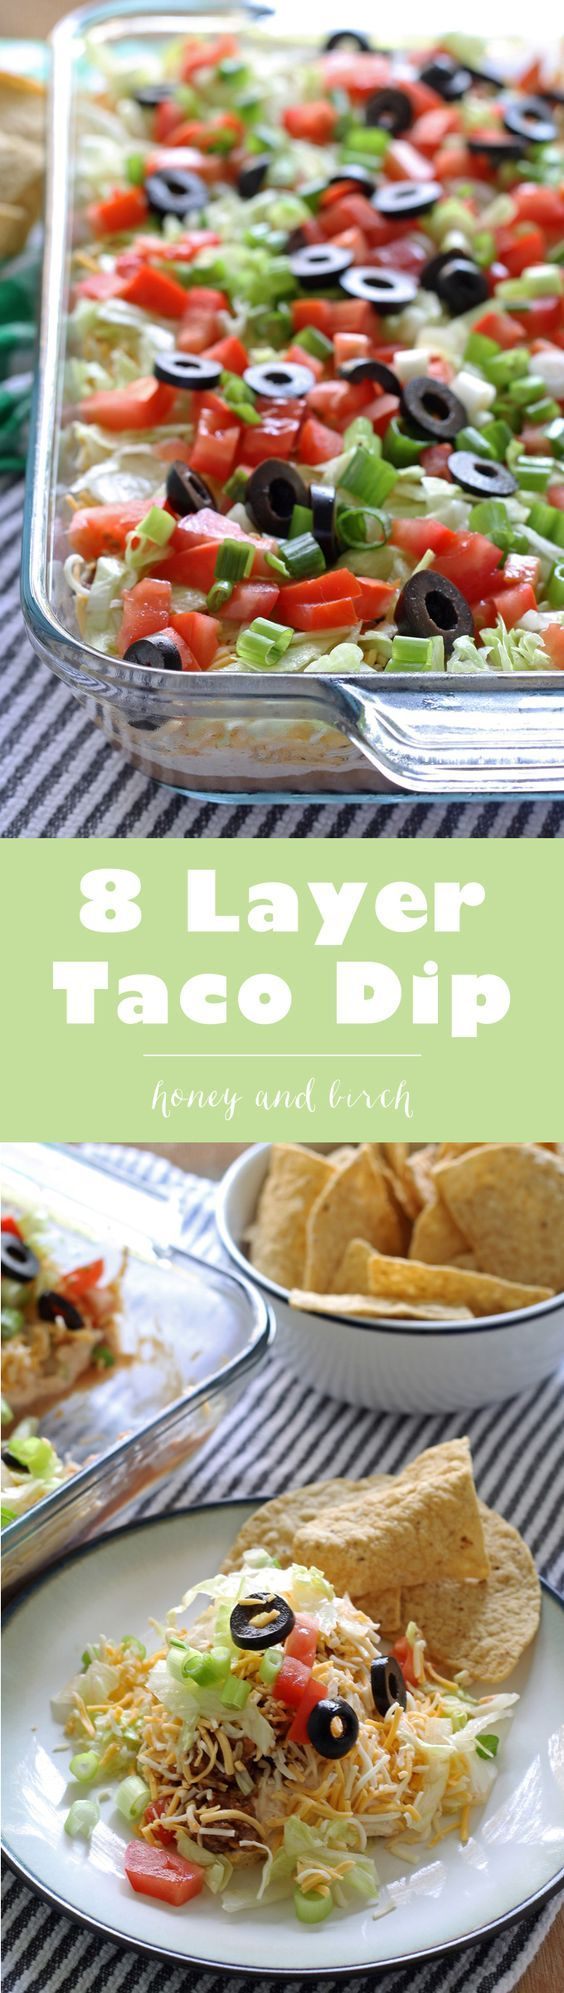 8 Layer Taco Dip | Recipe